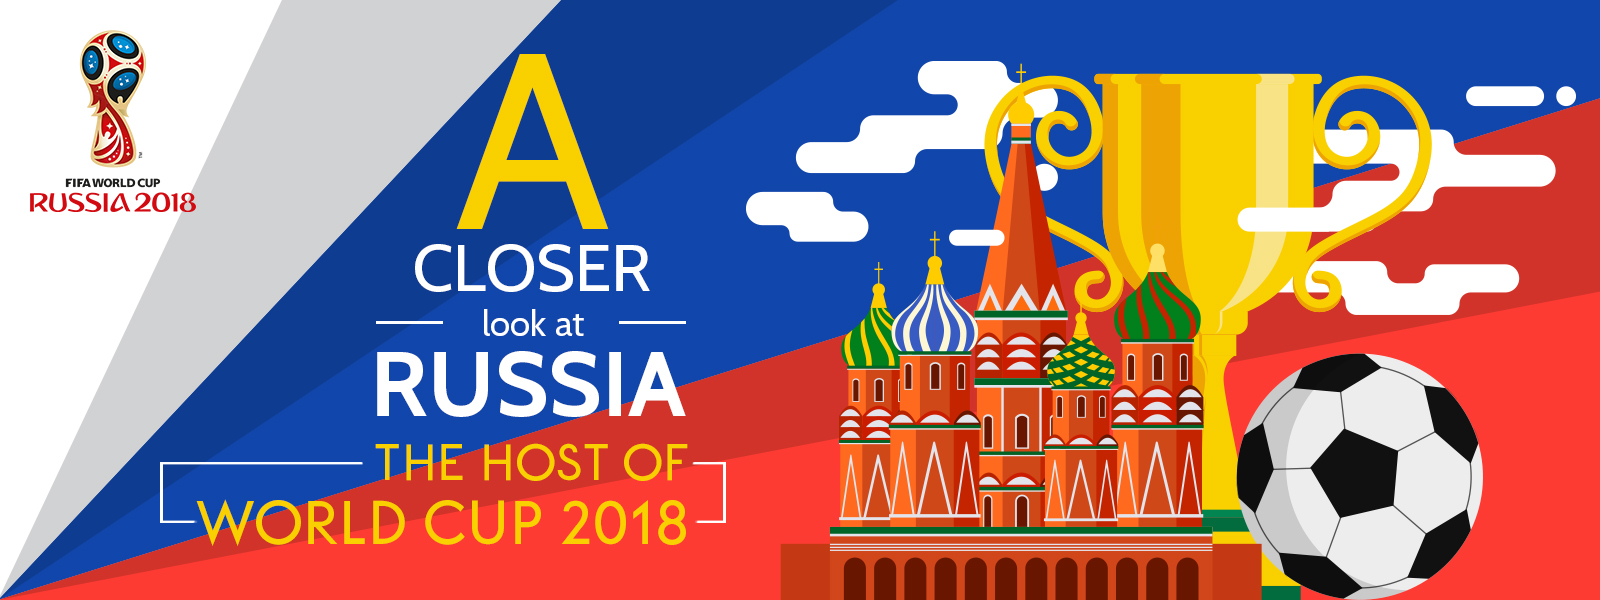 A close look at Russia – The host of World Cup 2018